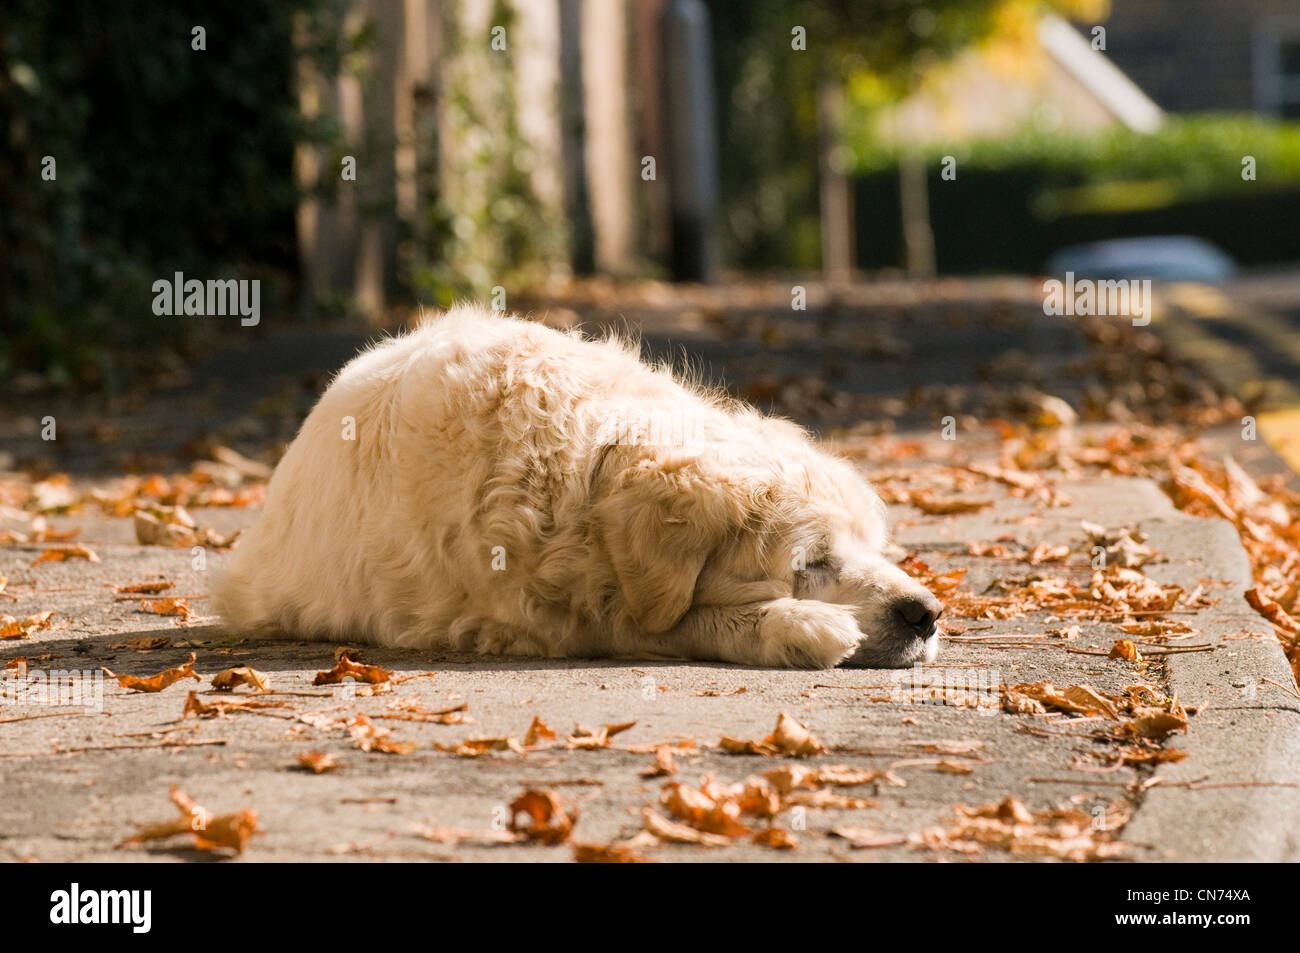 Sleepy tired relaxed adult golden retriever (cute fluffy pet dog) lying on pavement, fast asleep, snoozing in autumn Stock Photo